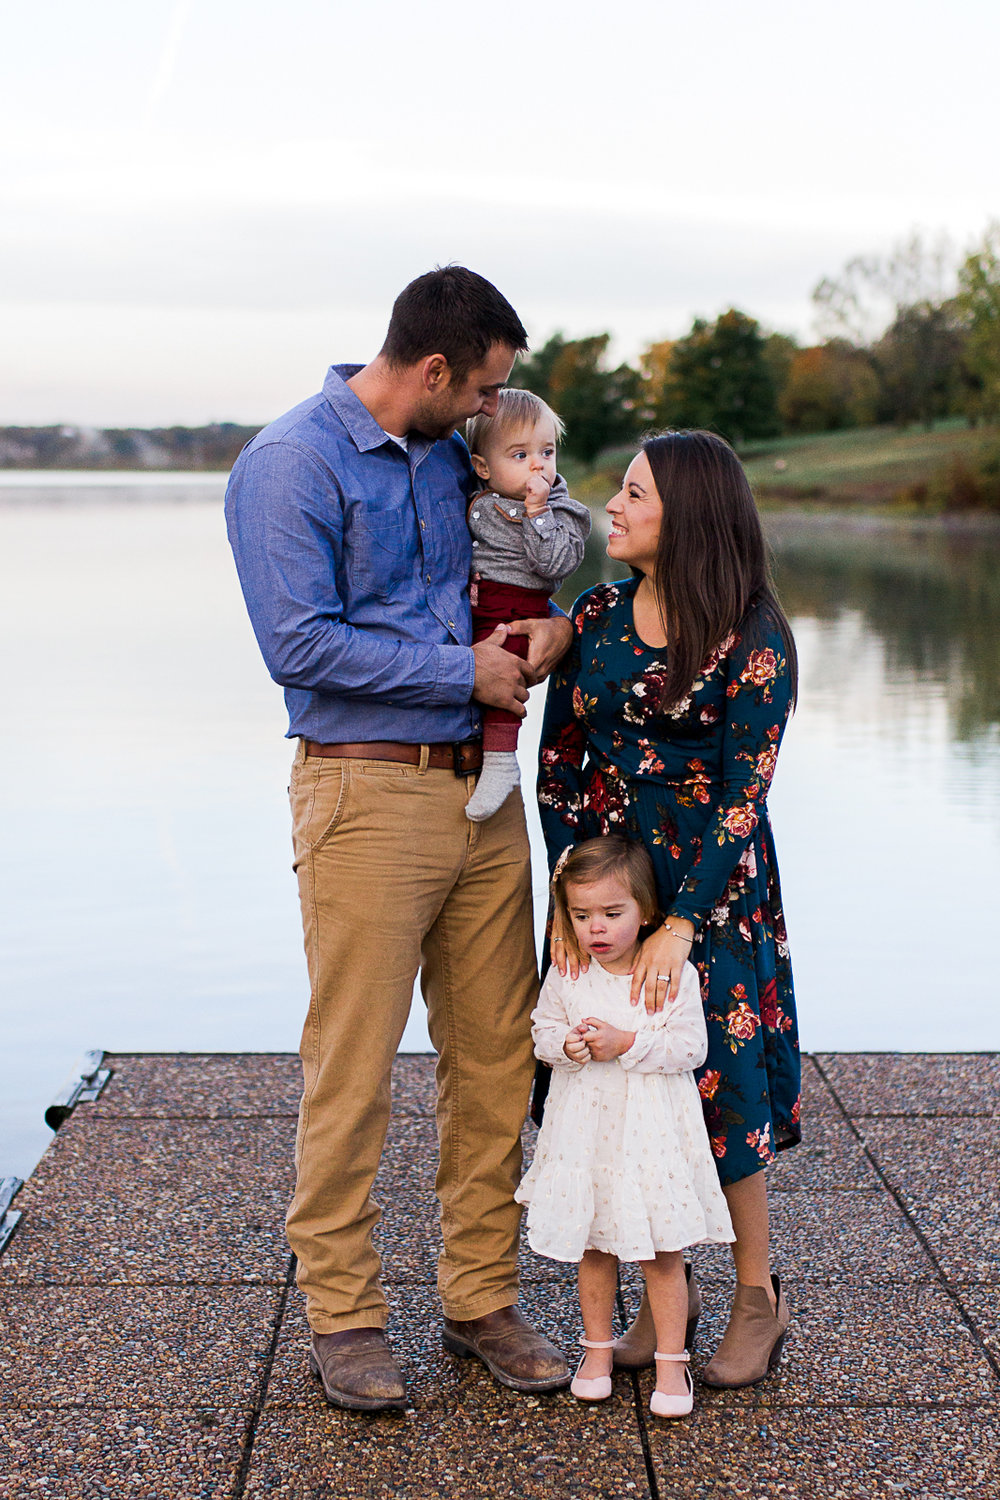 Family photo on the dock, Kansas City lifetyle photographer, sunrise family session at Shawnee Mission Park, Rebecca Clair Photography